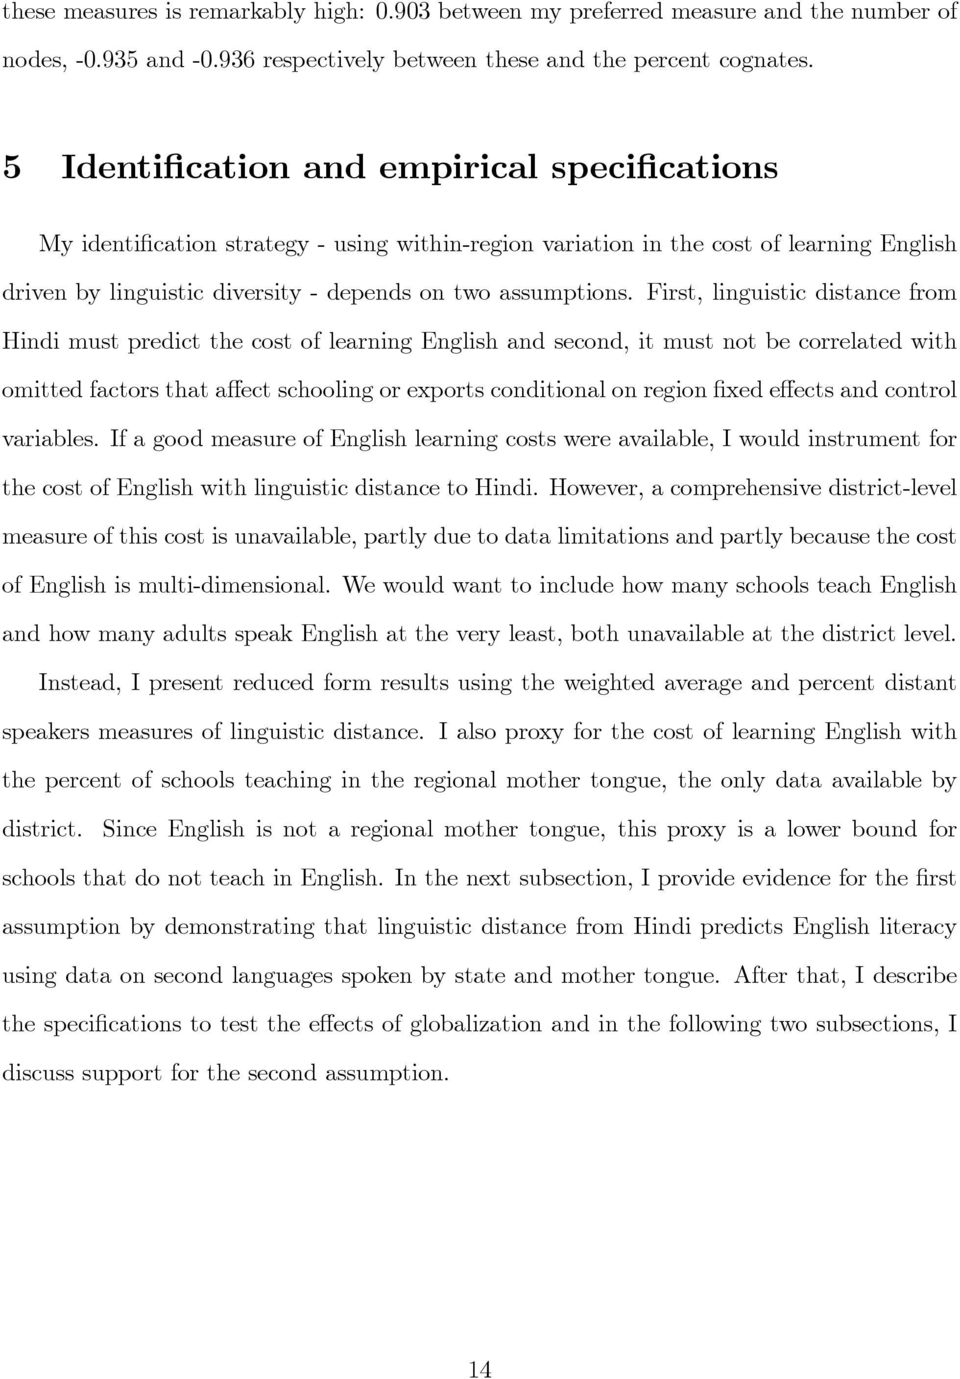 First, linguistic distance from Hindi must predict the cost of learning English and second, it must not be correlated with omitted factors that a ect schooling or exports conditional on region xed e